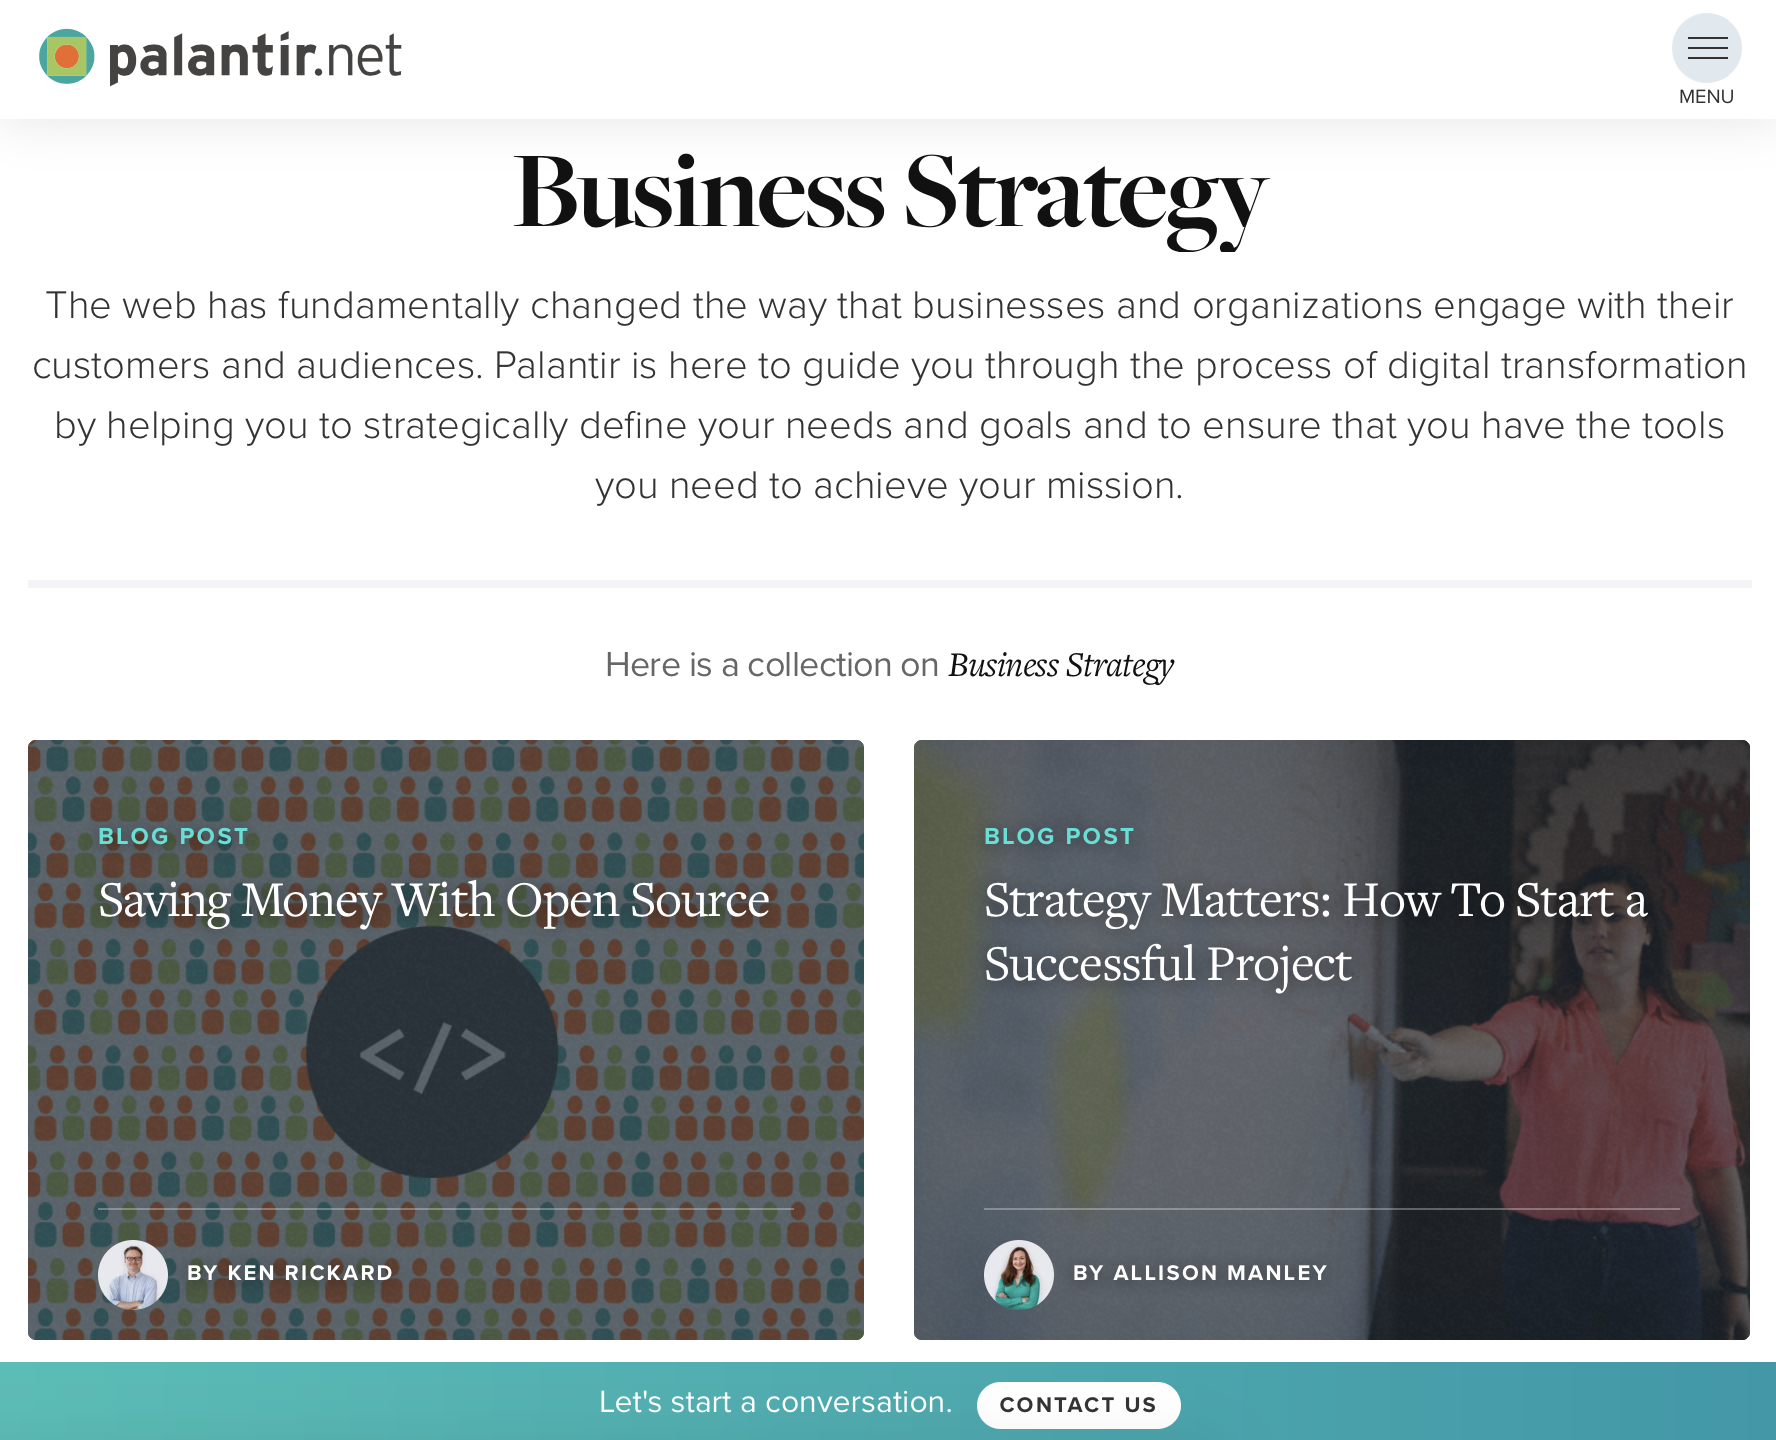 Business Strategy collection